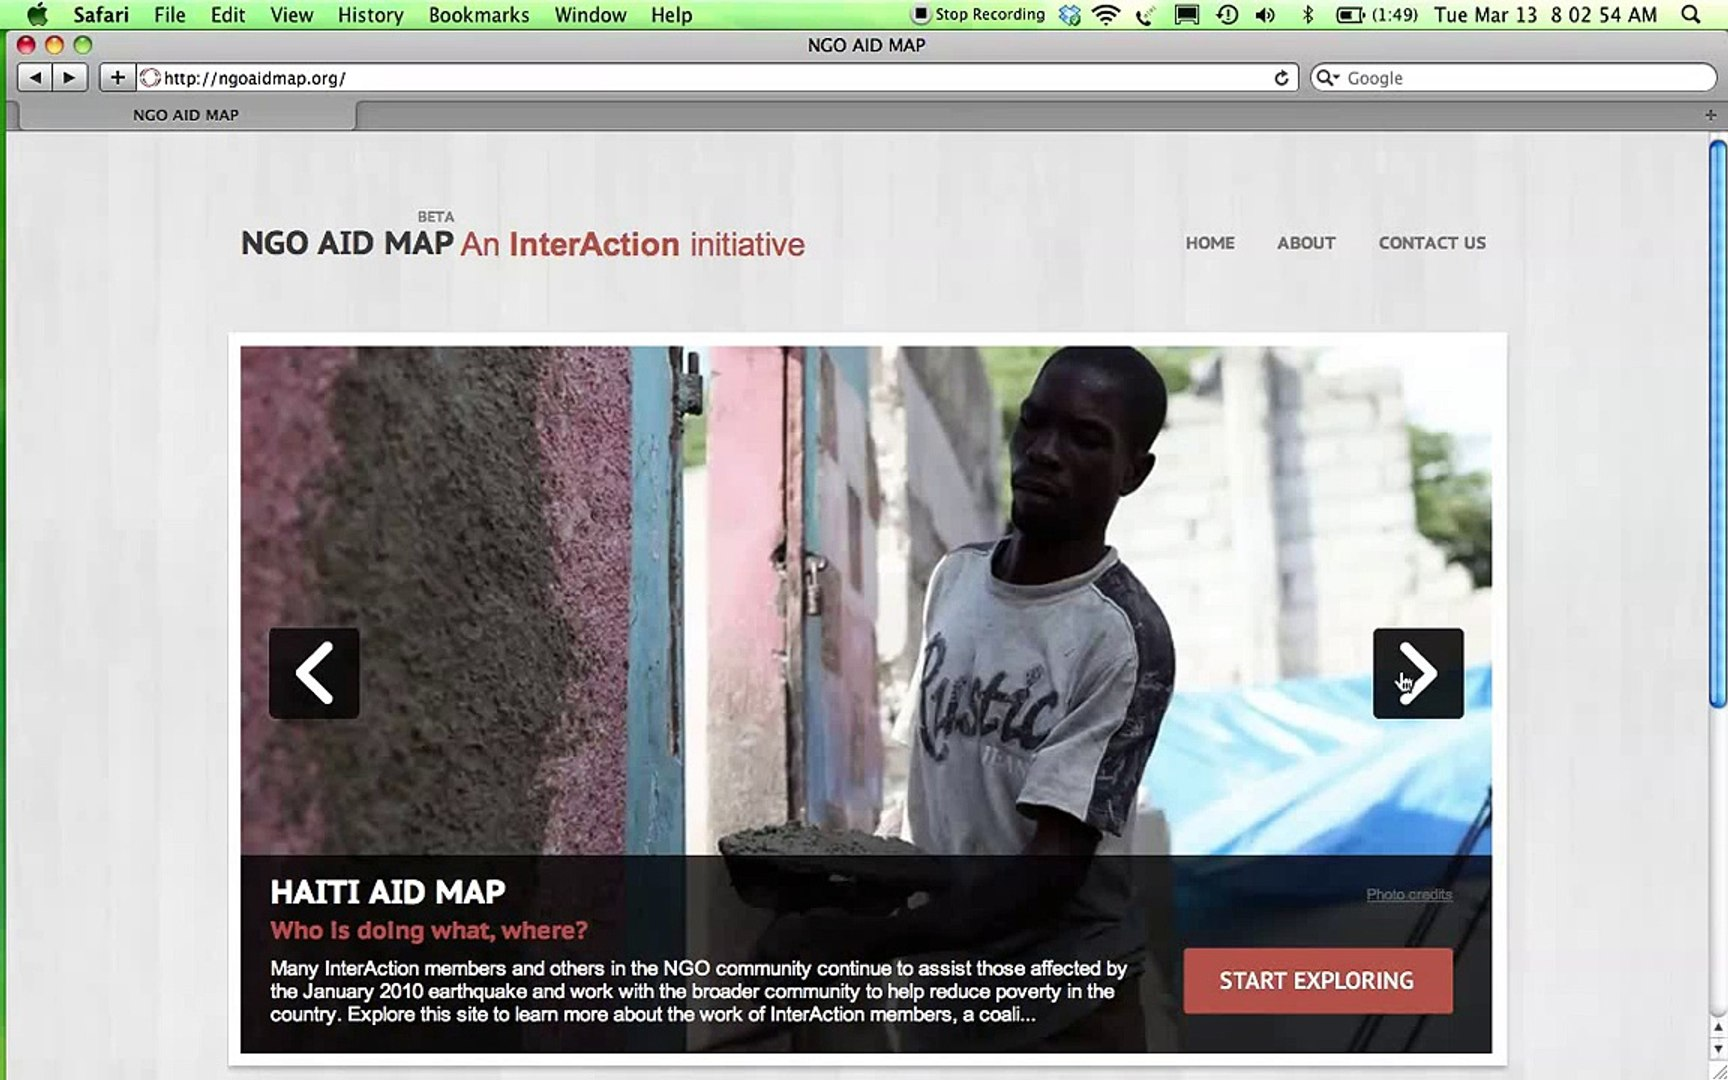 NGO Aid Map - Overview & Functionality